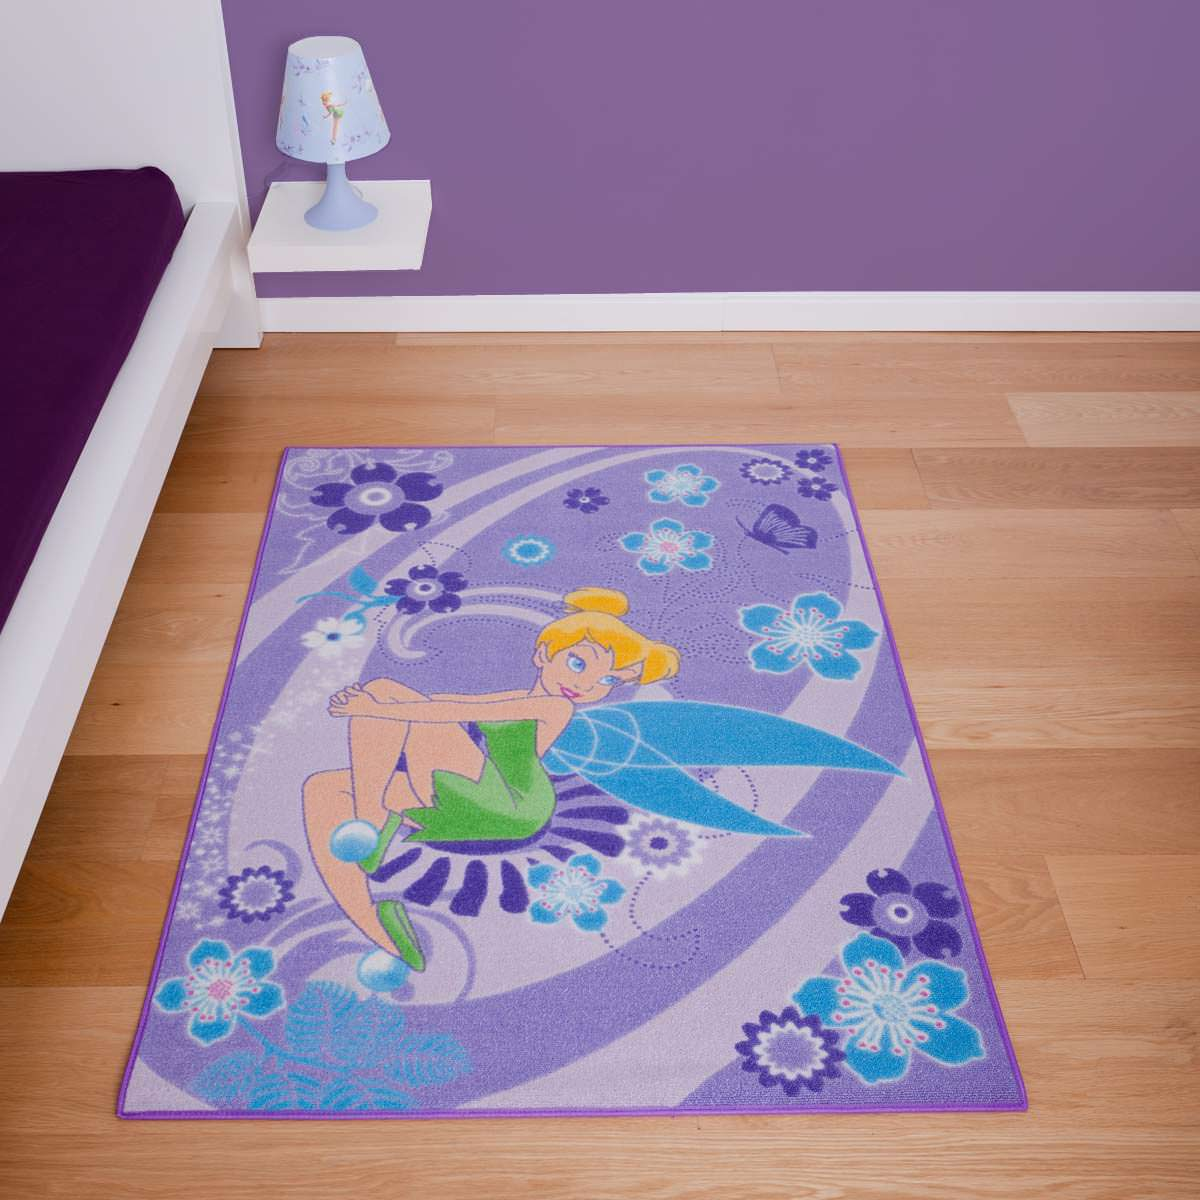 disney fairies tapis f e clochette 133 x 95 cm fairies f e clochette decokids tous leurs. Black Bedroom Furniture Sets. Home Design Ideas